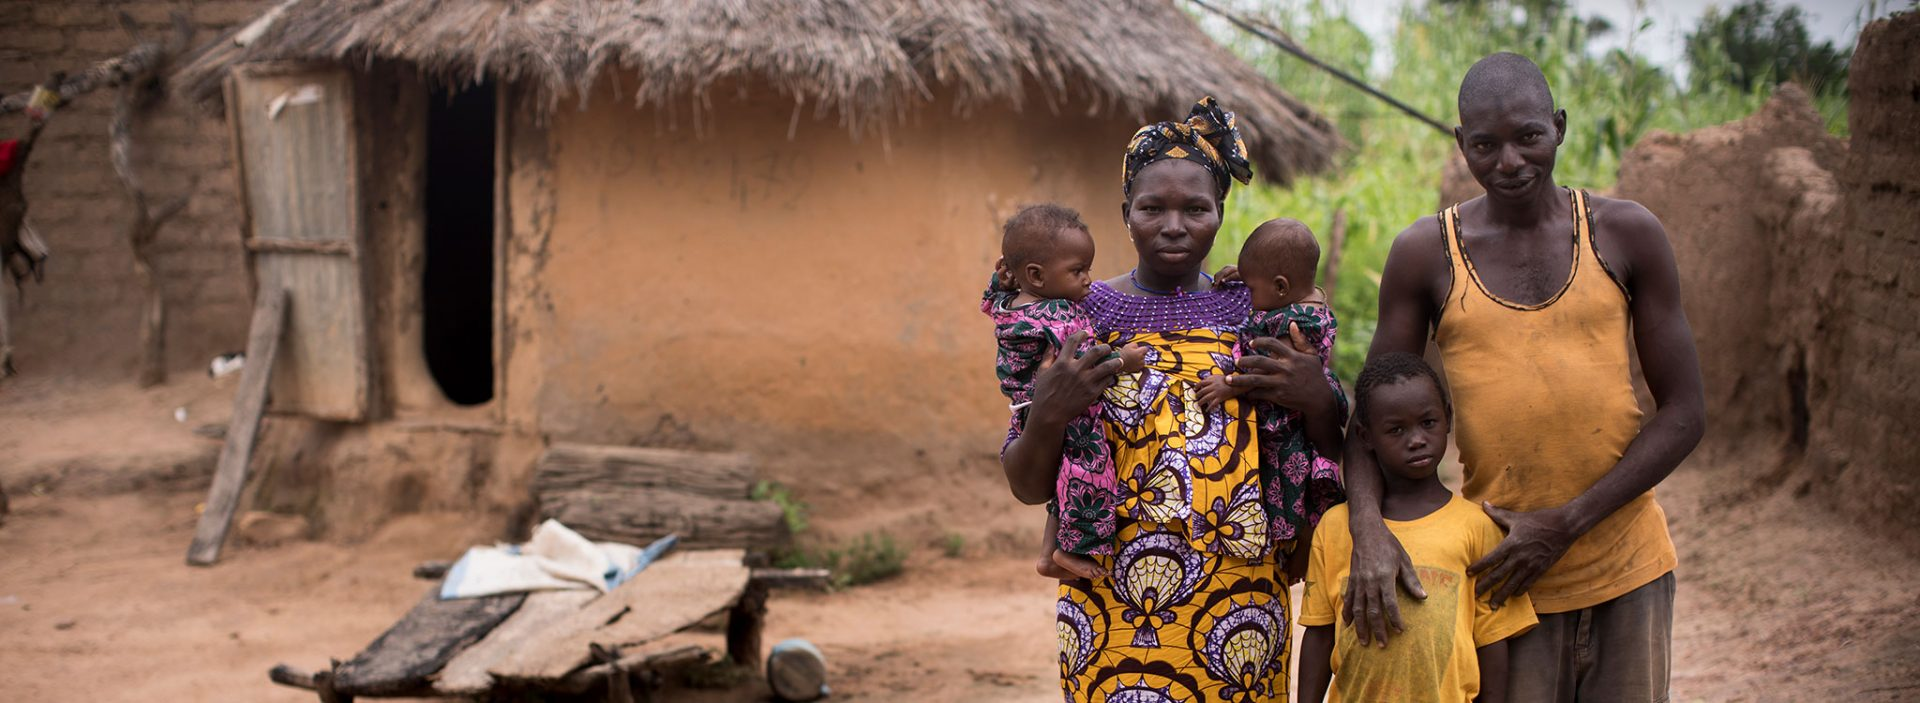 A family supported by Action Against Hunger in Mali.